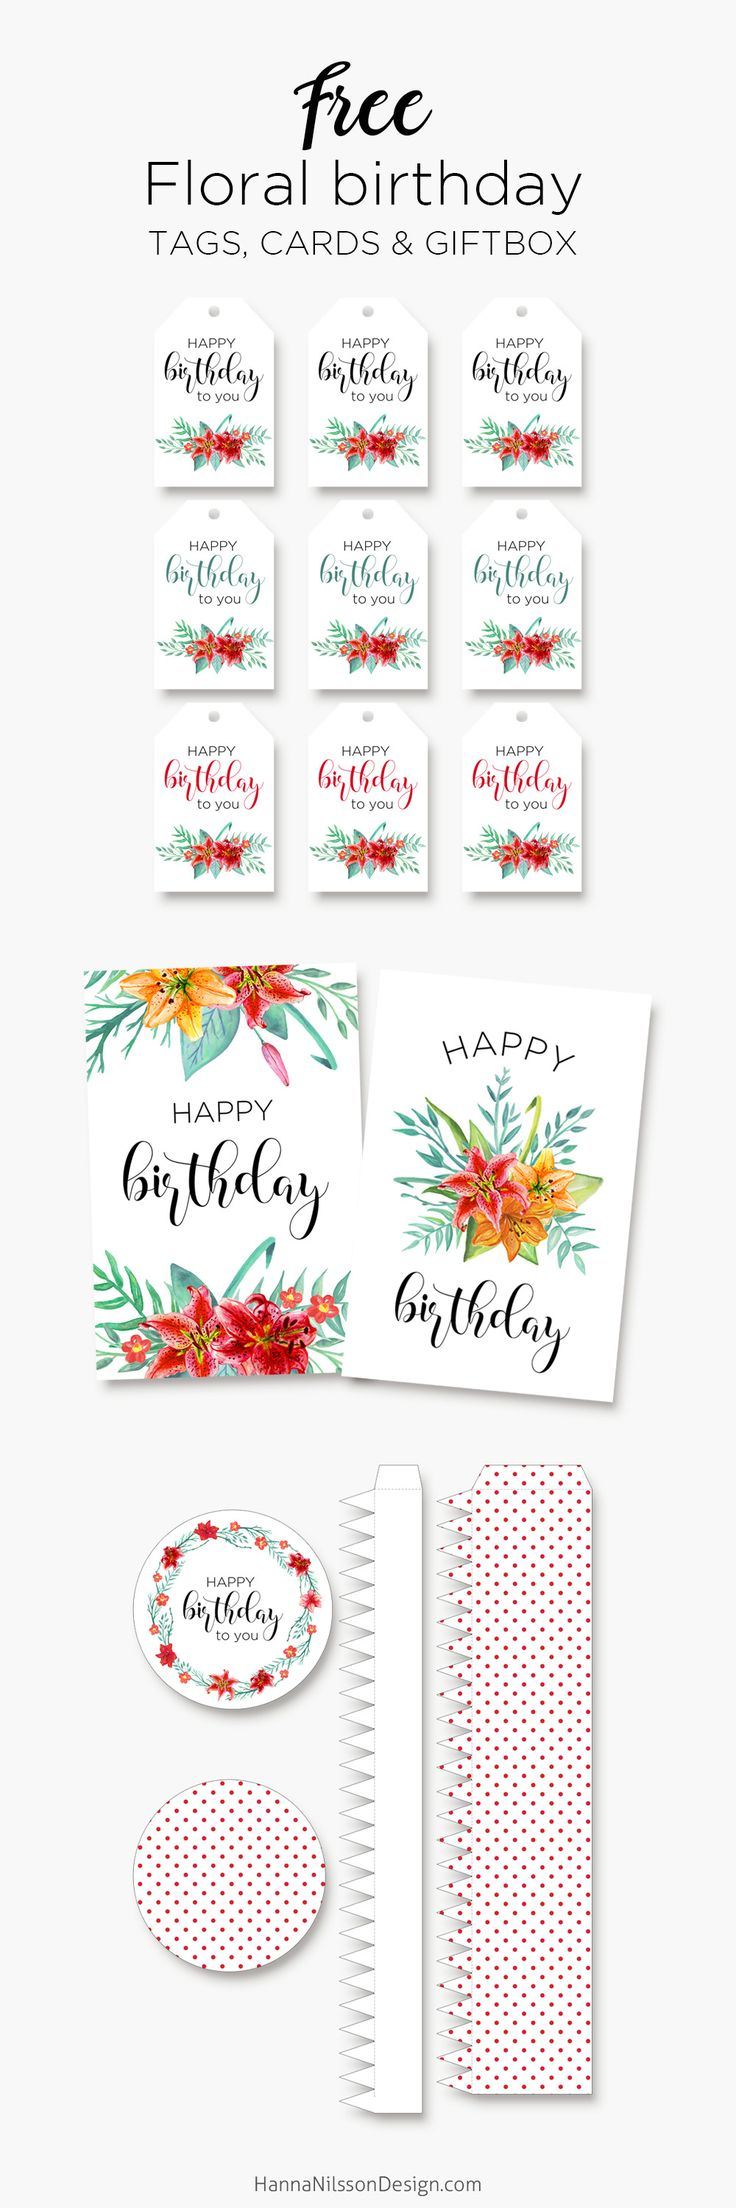 Free Printable Floral Birthday Cards, Tags and Gift Box from iHanna {newsletter subscription required}